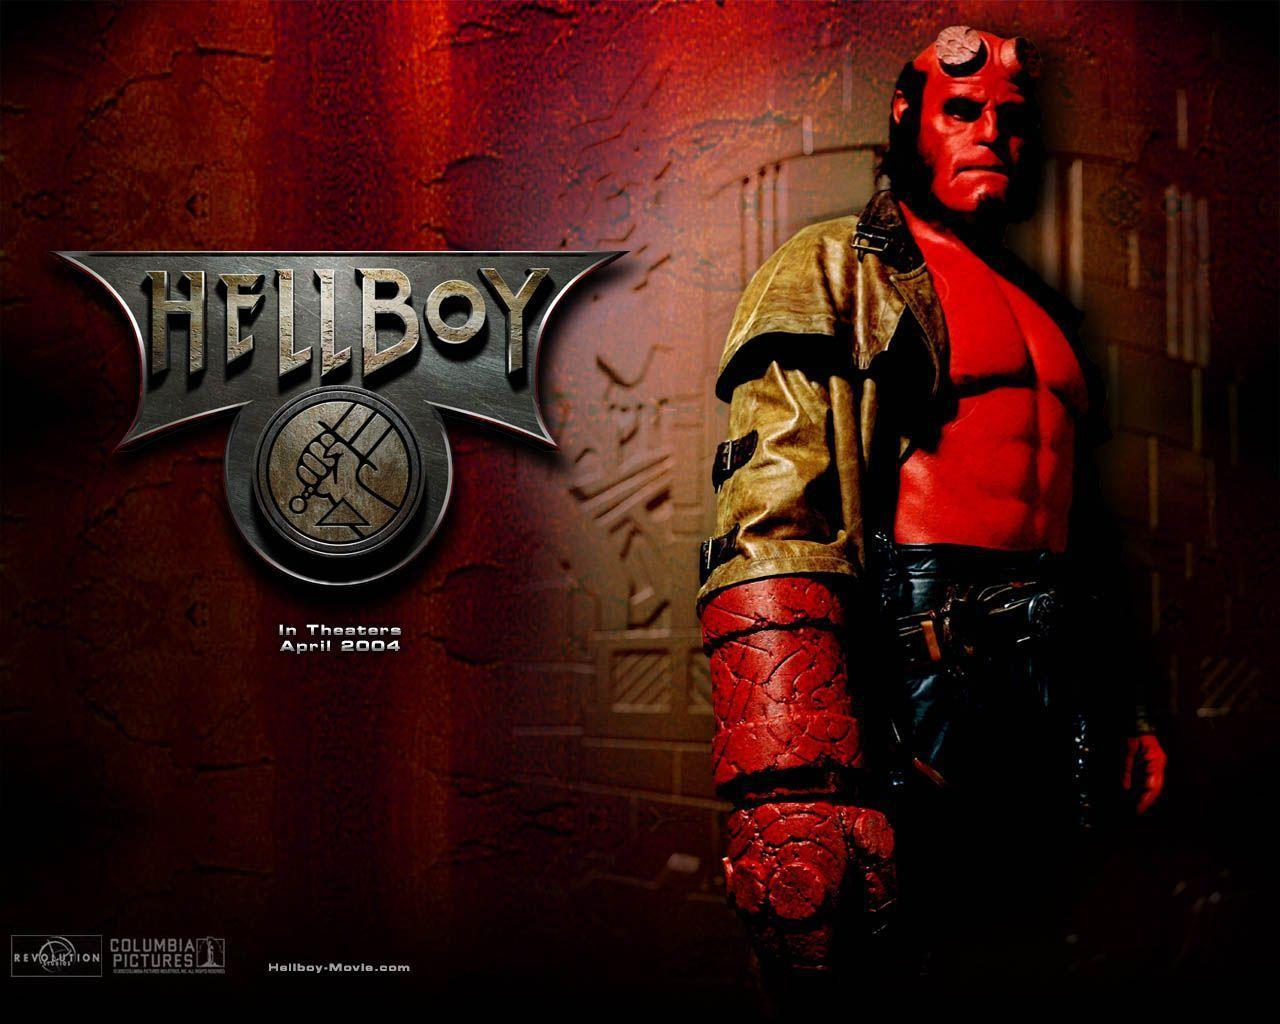 Hellboy TheWallpapers | Free Desktop Wallpapers for HD, Widescreen ...